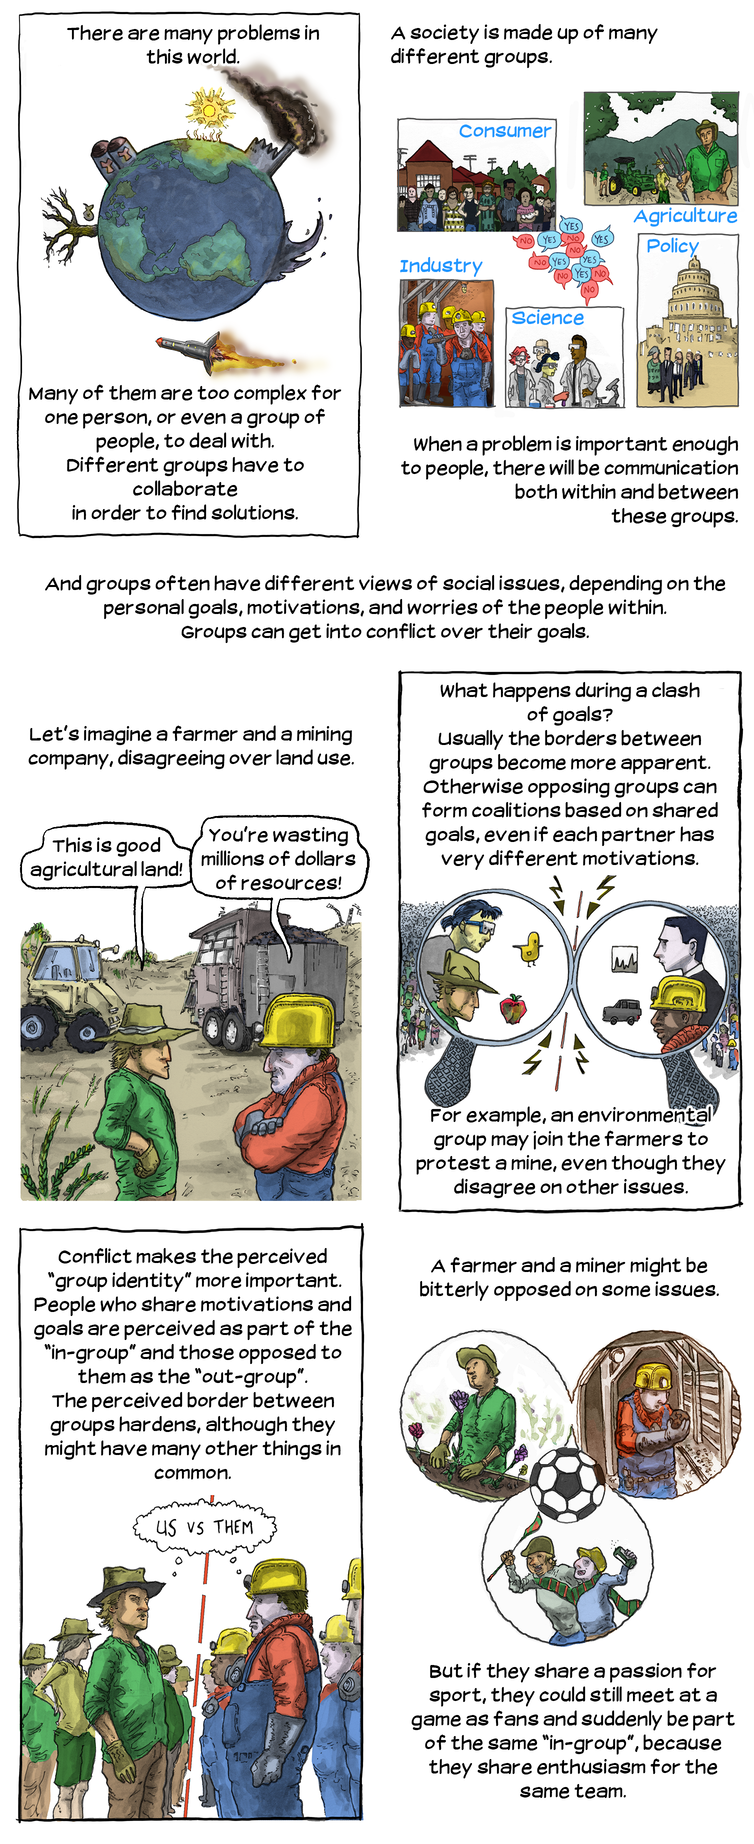 How to de-escalate and resolve conflict in difficult conversations (about environmental issues)